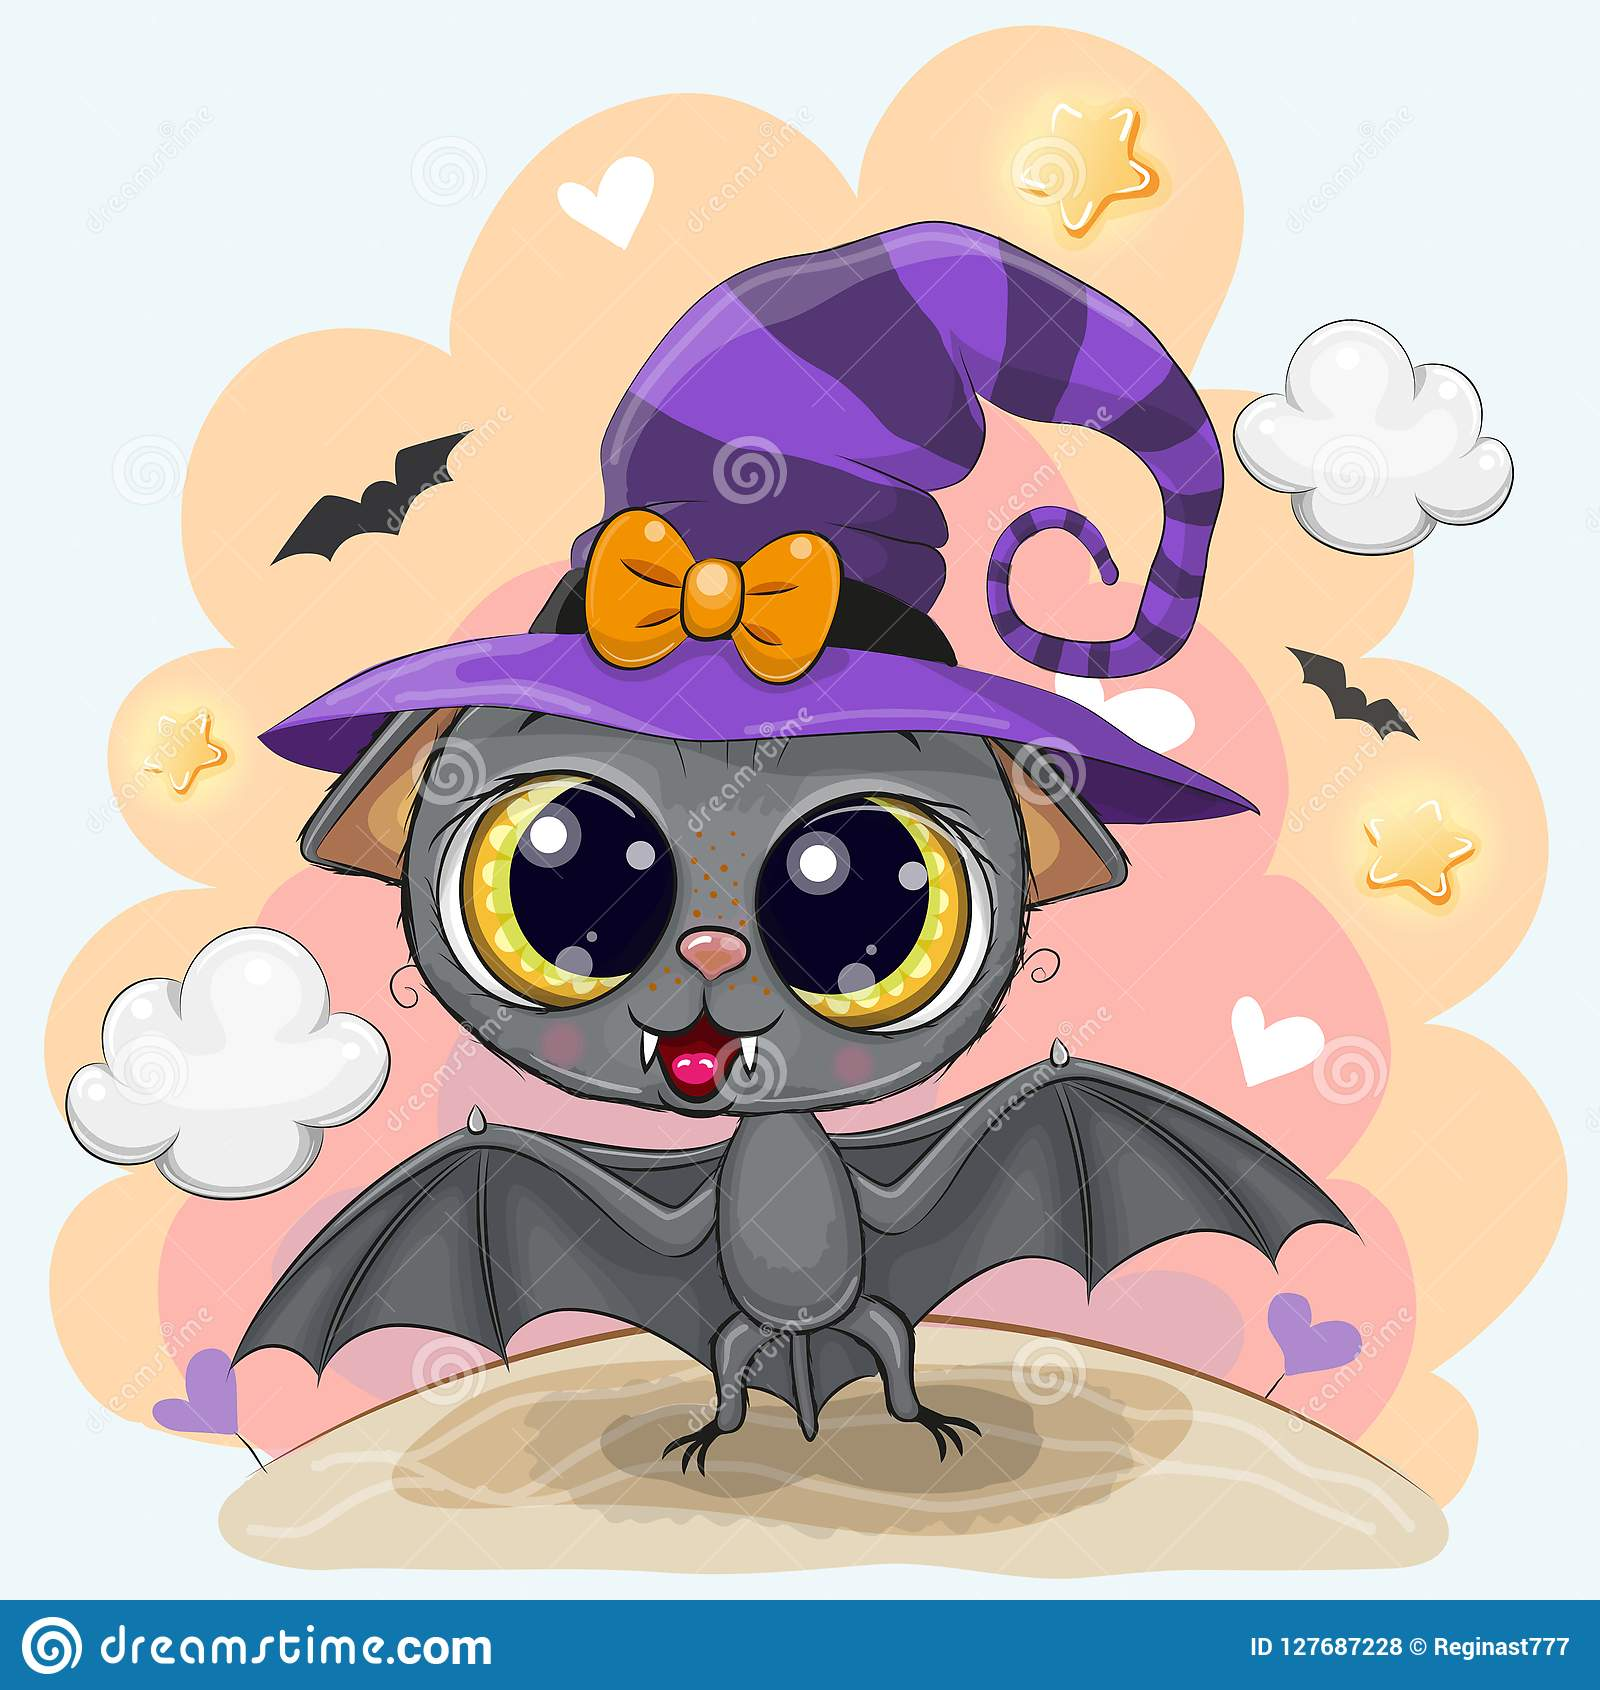 Cute Pictures Of Halloween.Cute Bat In A Halloween Hat Stock Vector Illustration Of Face Spooky 127687228